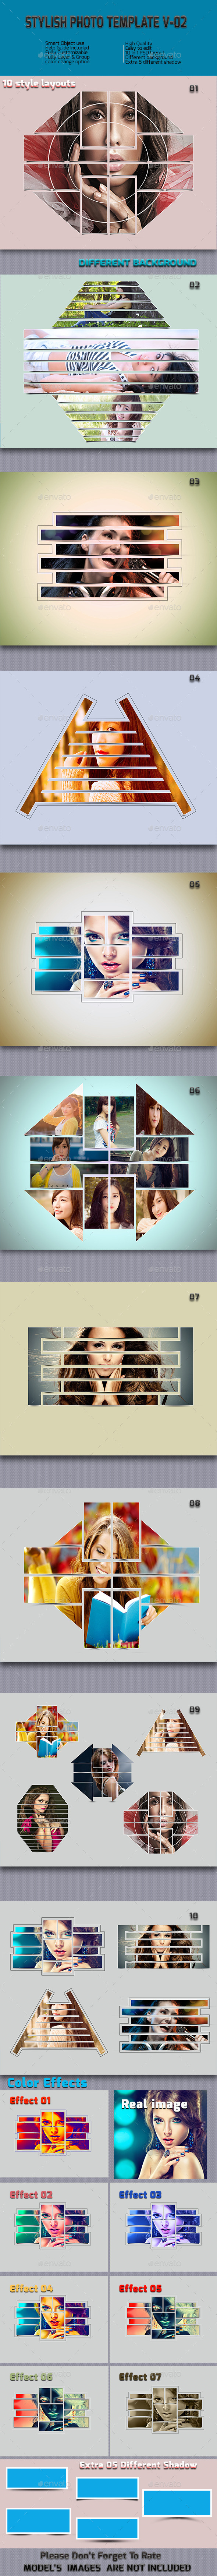 GraphicRiver Stylish Photo Frame Templates V-02 8829806